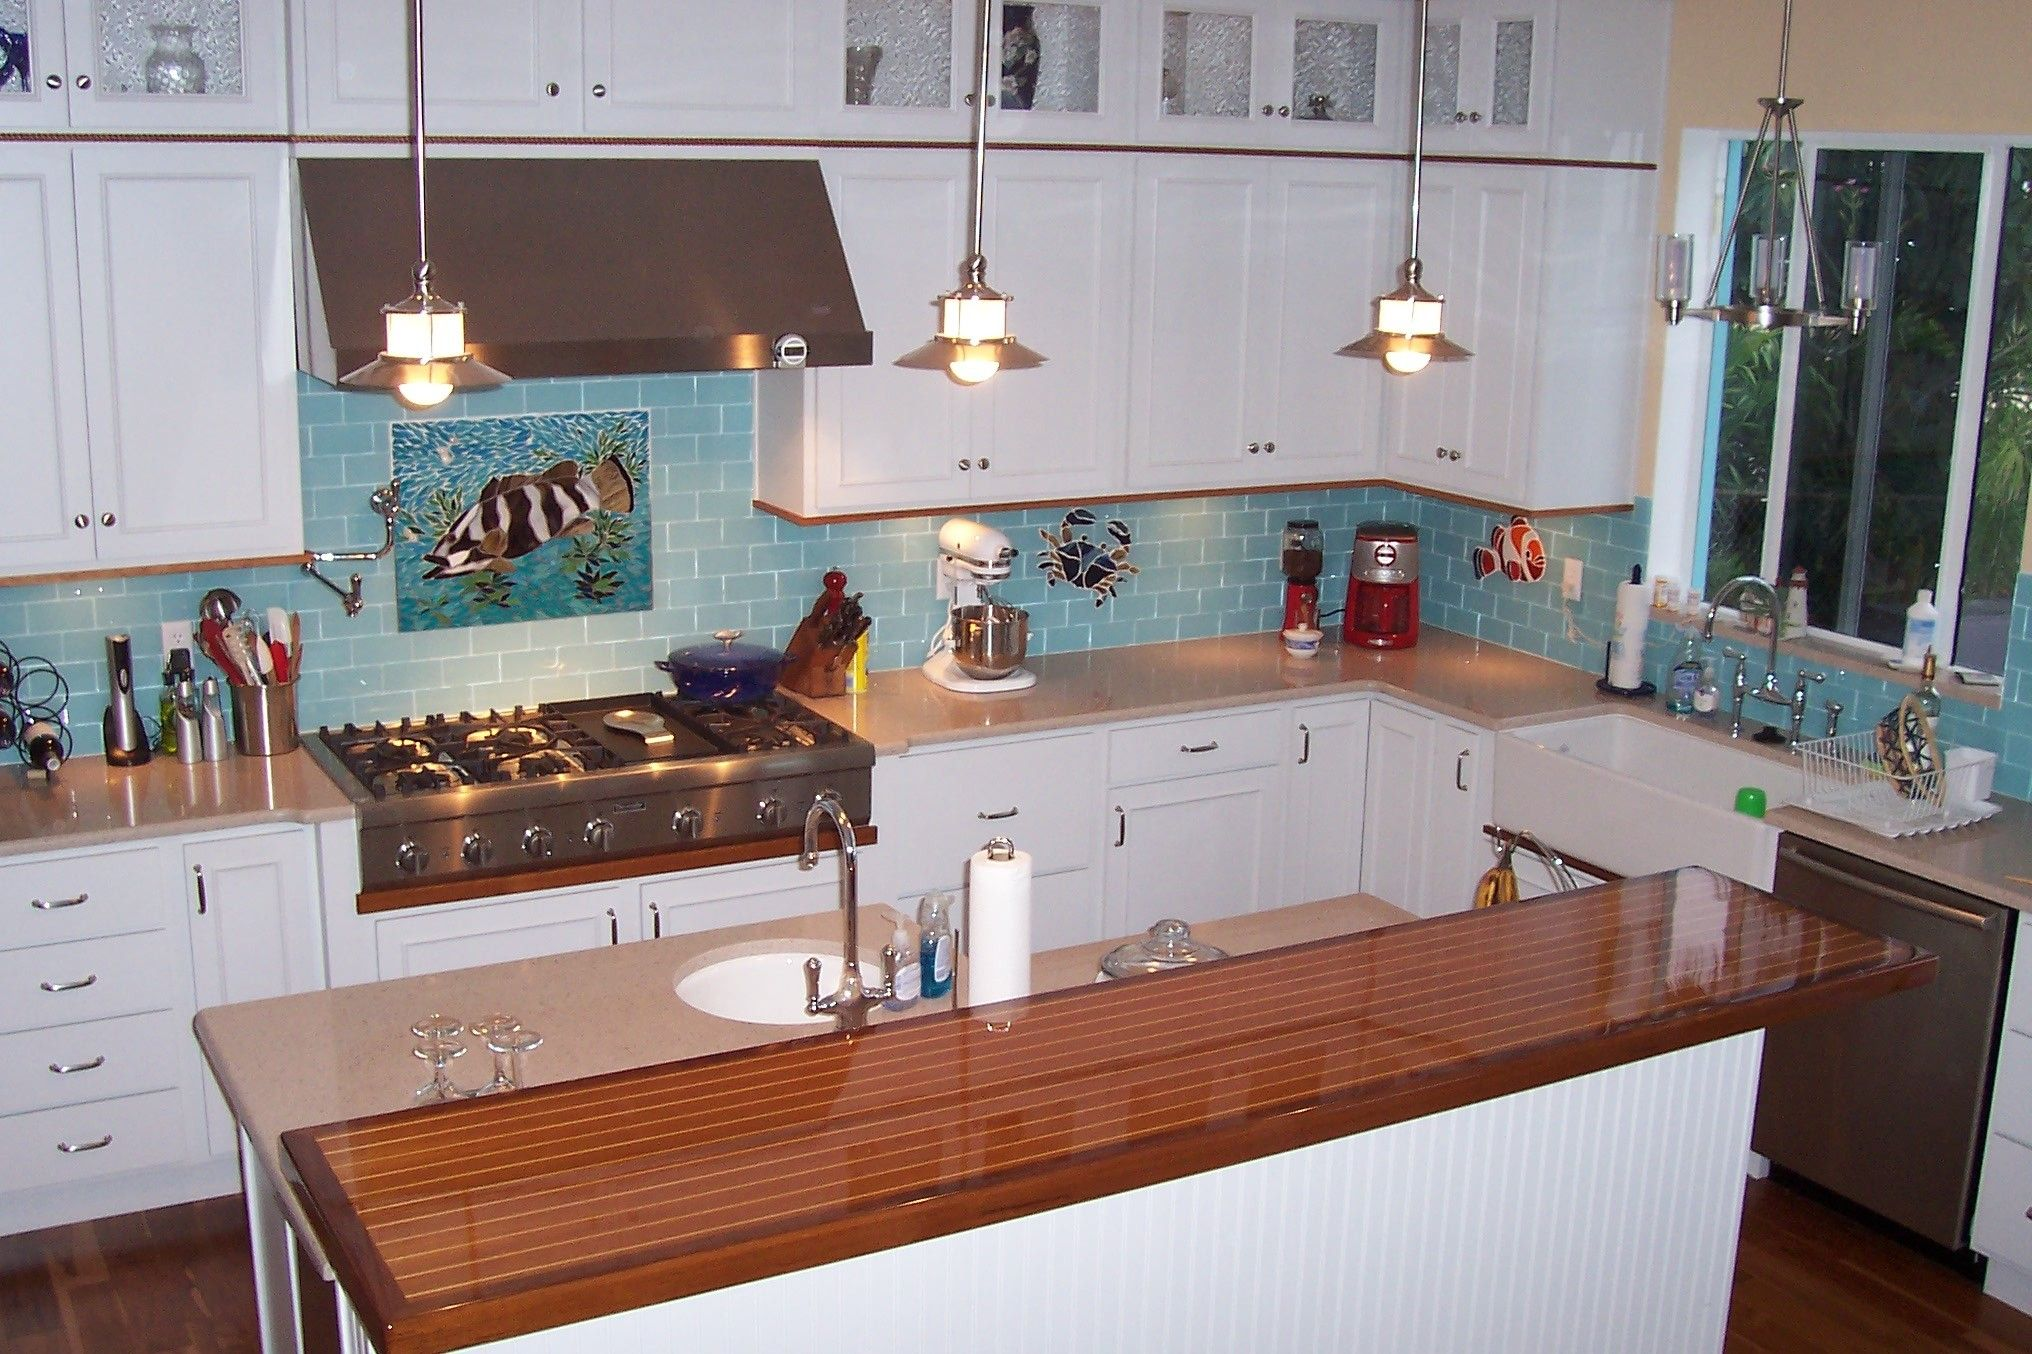 Lush Breaker 3x6 Medium Blue Glass Subway Tile Kitchen Wall Installation